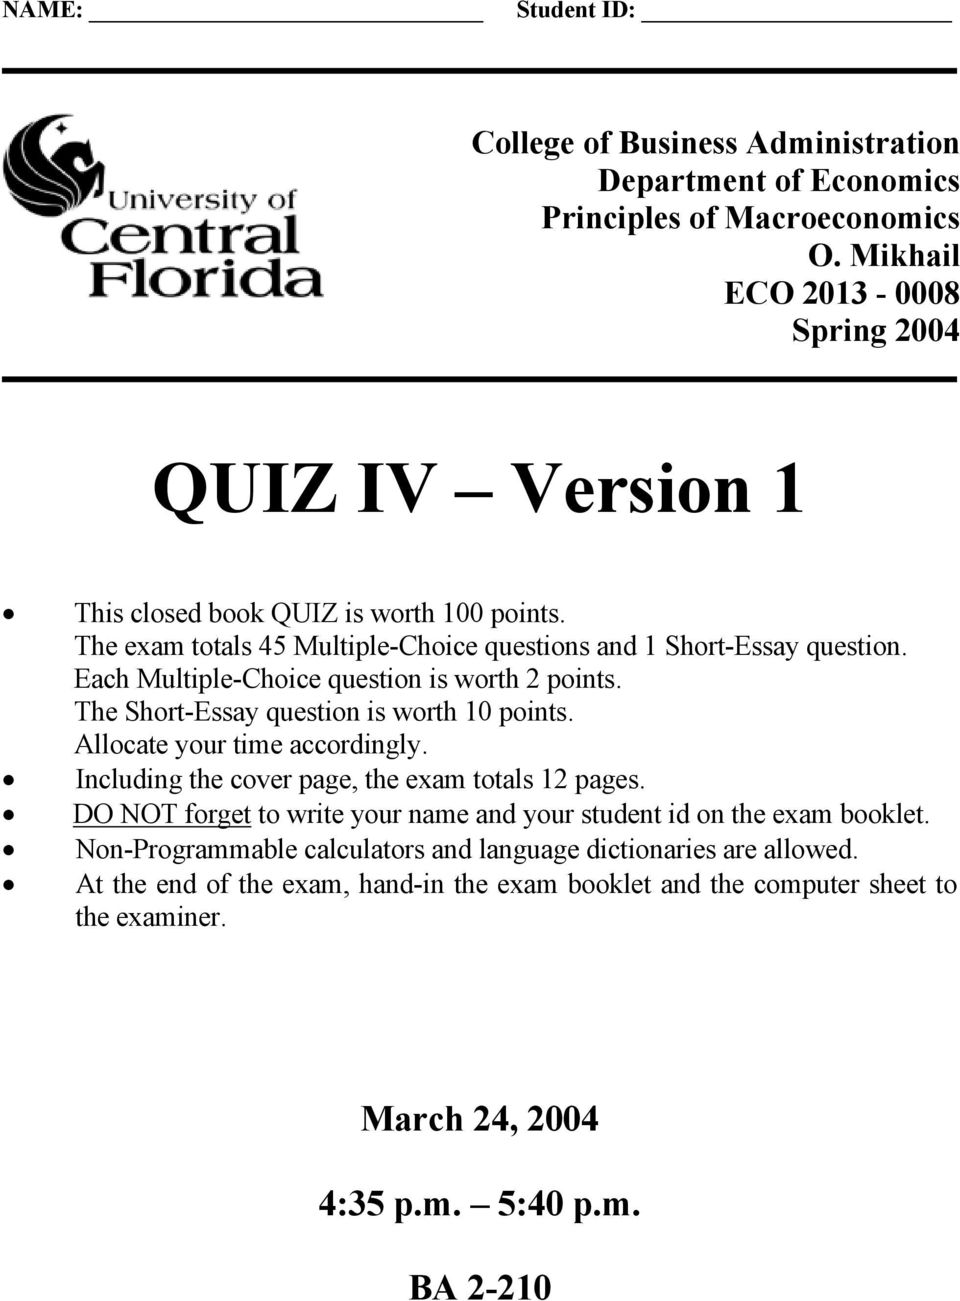 QUIZ IV Version 1  March 24, :35 p m  5:40 p m  BA PDF